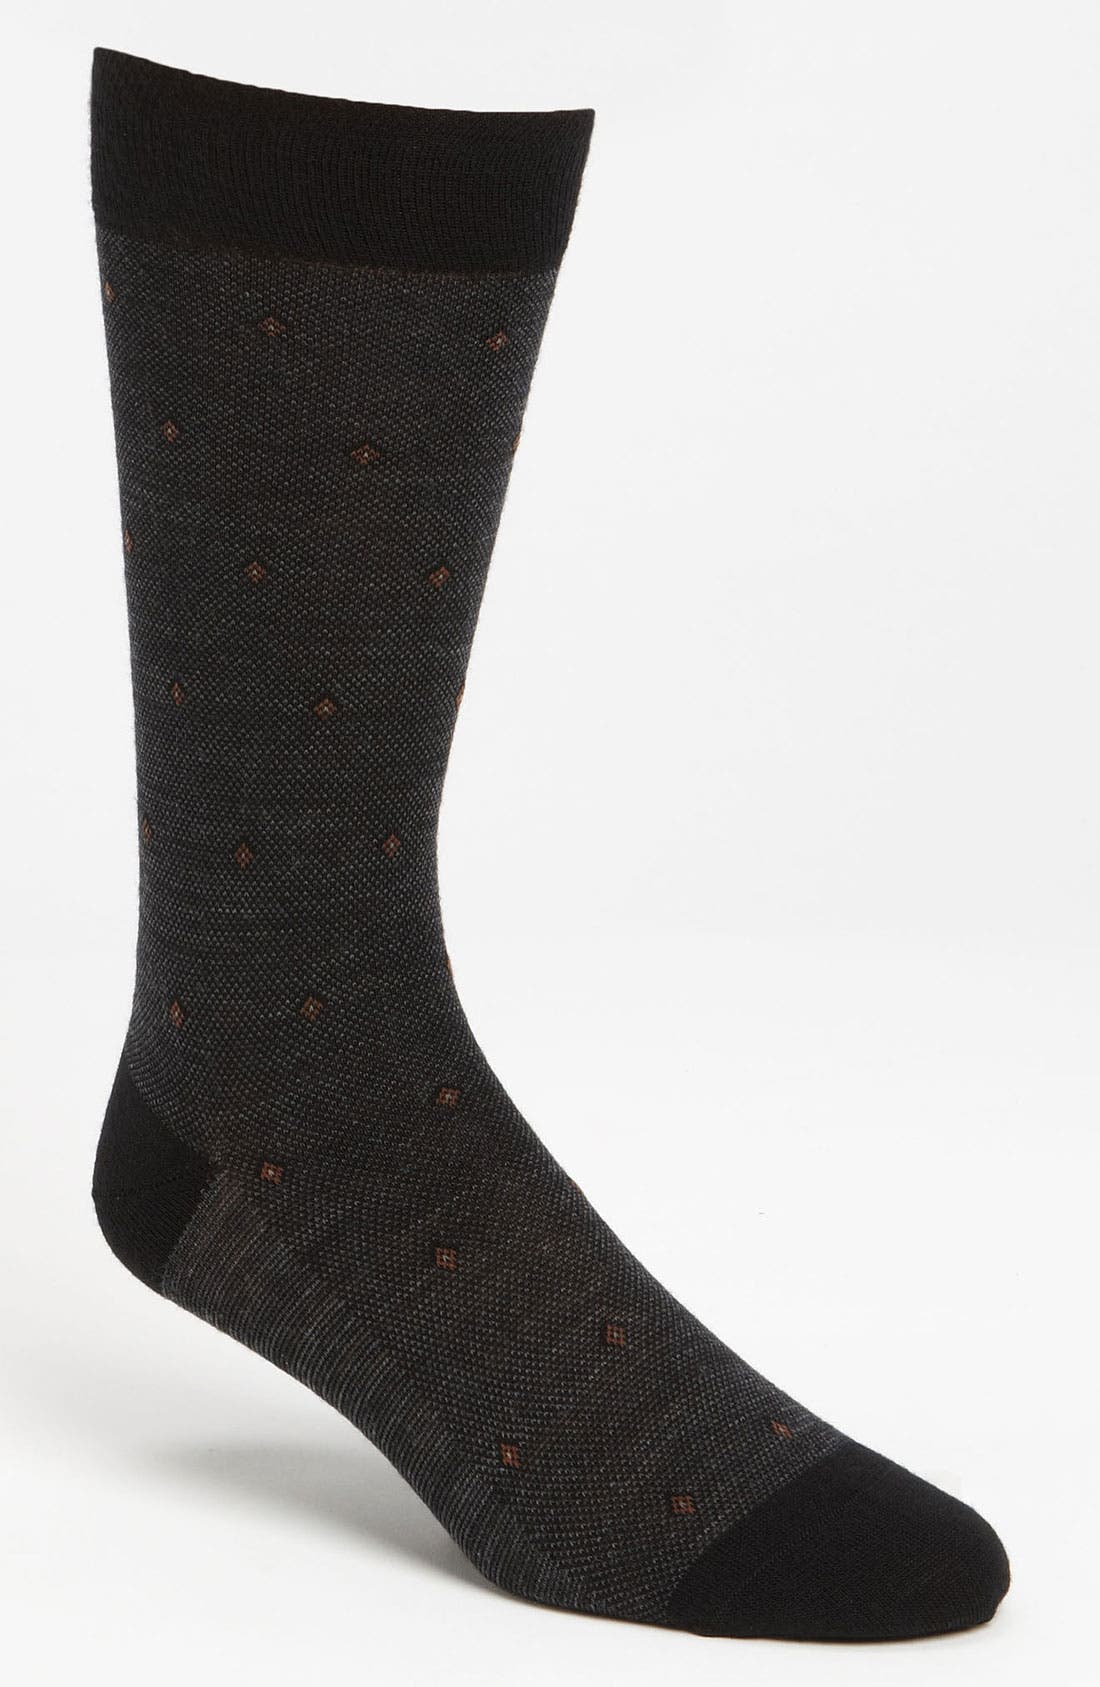 Main Image - Pantherella Bird's Eye Socks